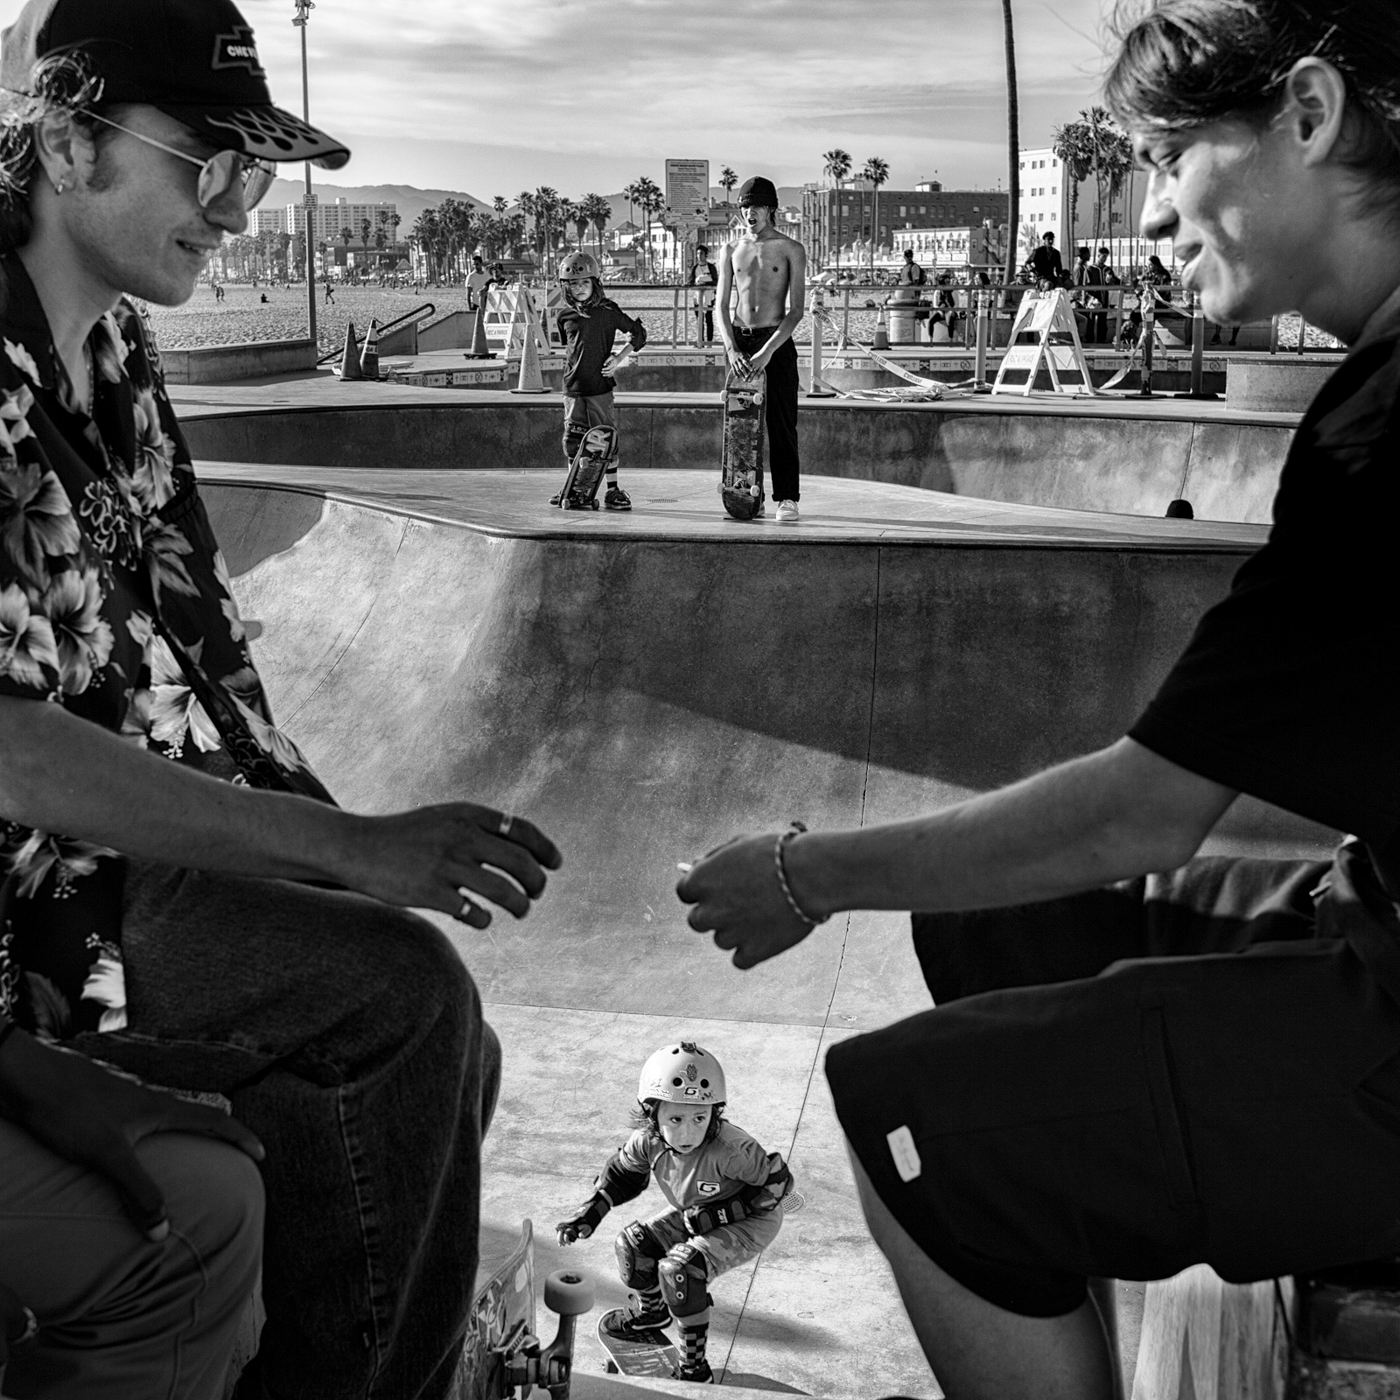 Another Day at the Skate Park © Dotan Saguy